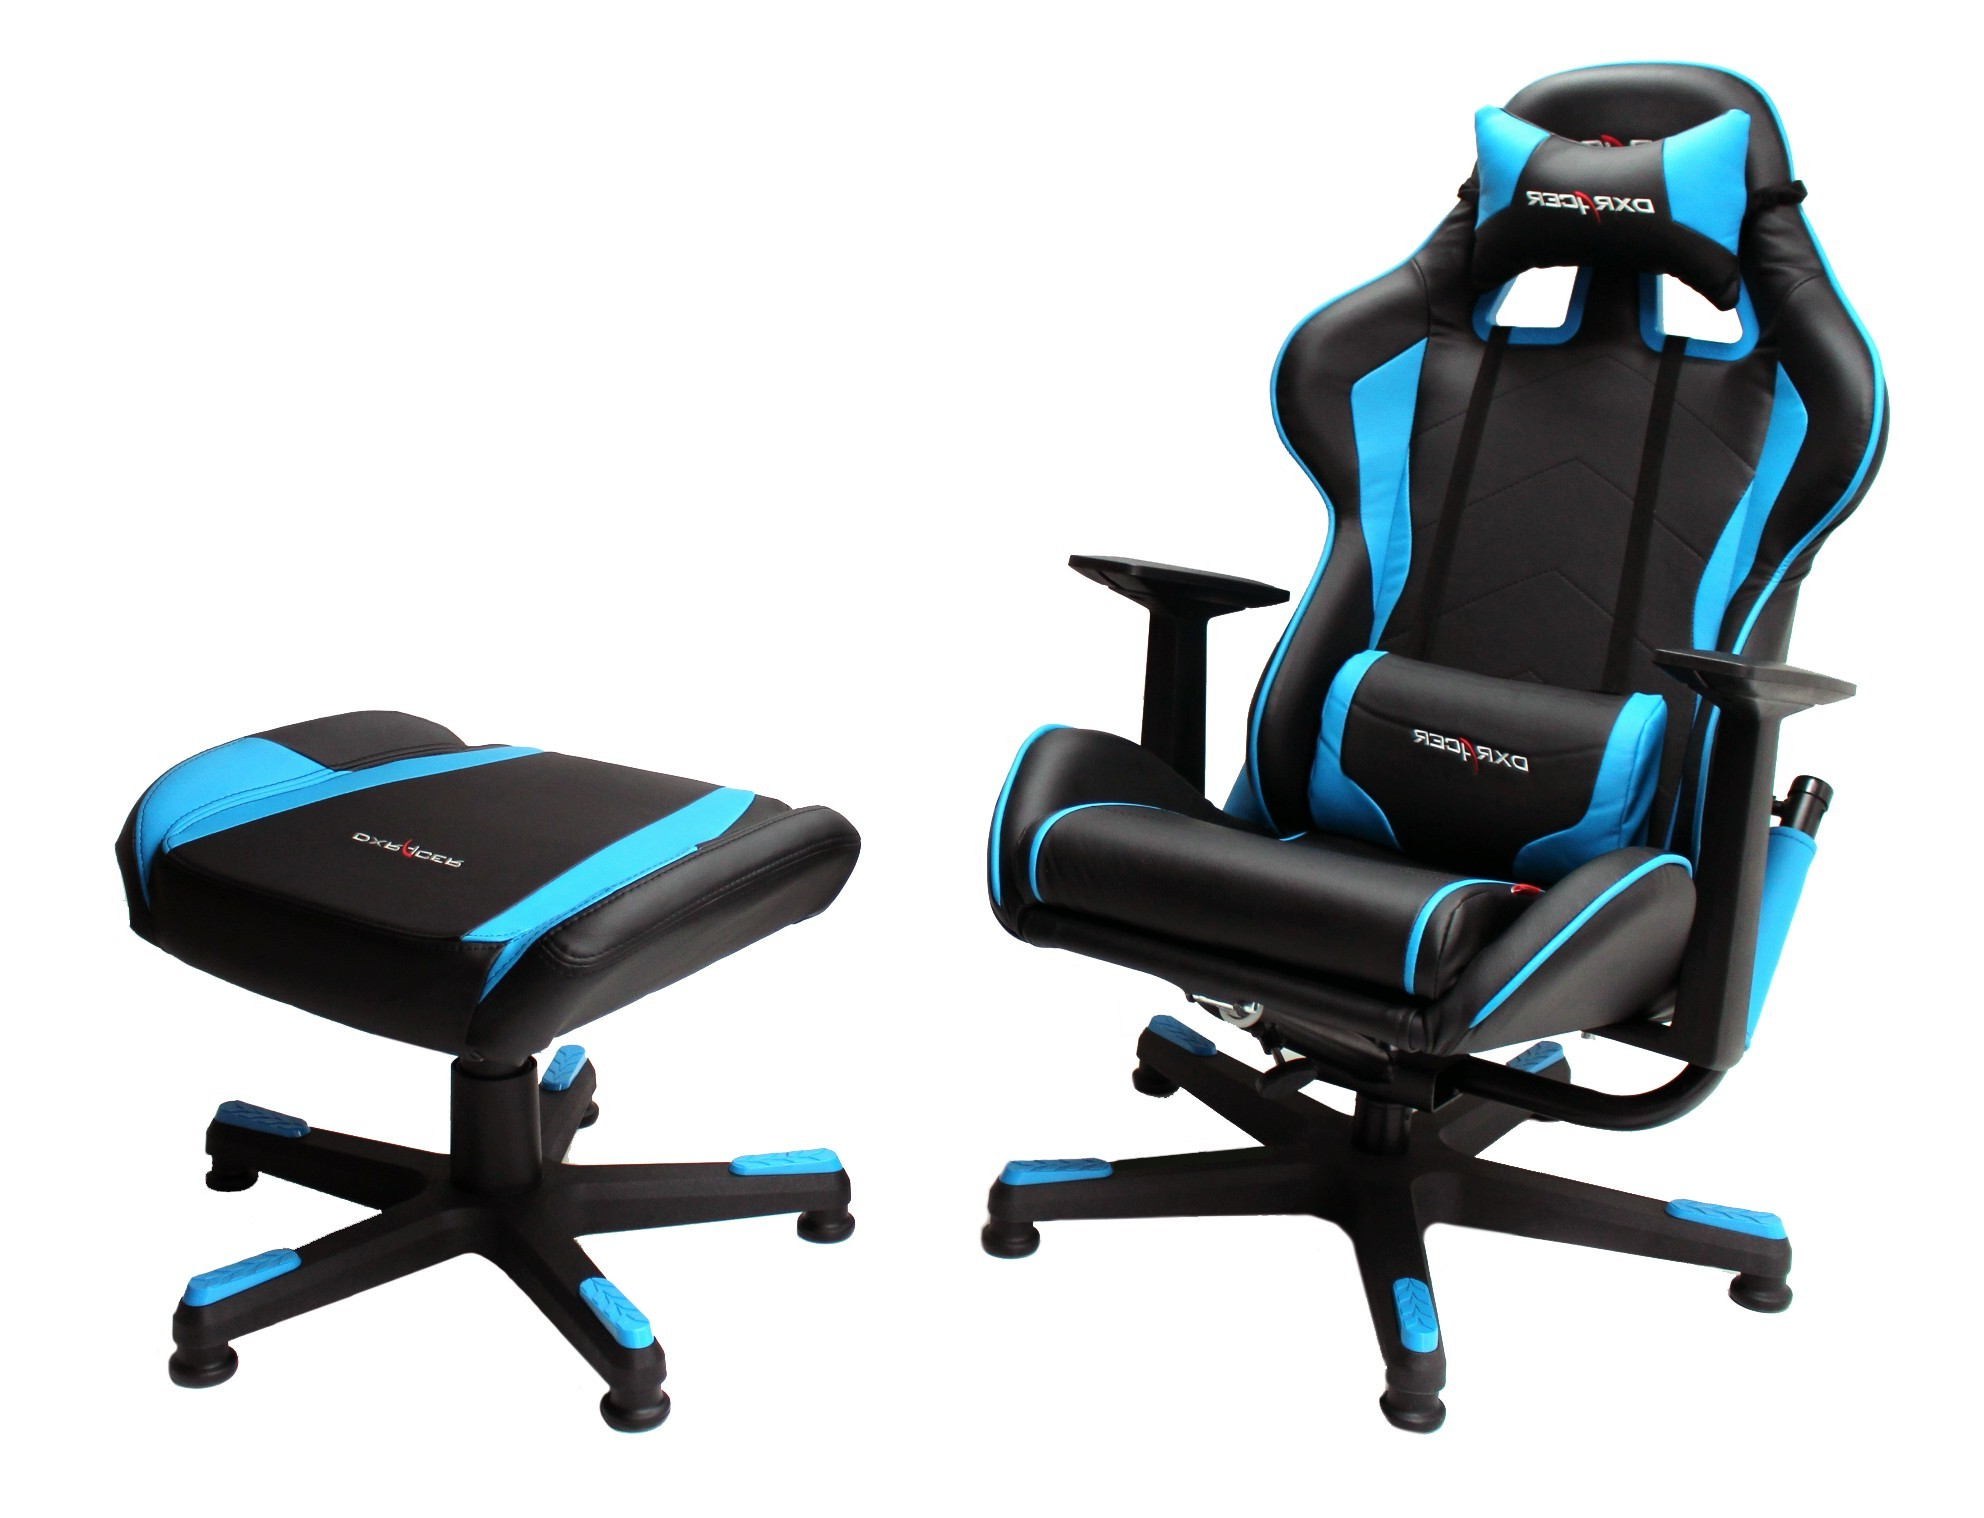 Dxr ChairTop Gaming For Review Blog n0O8kPw